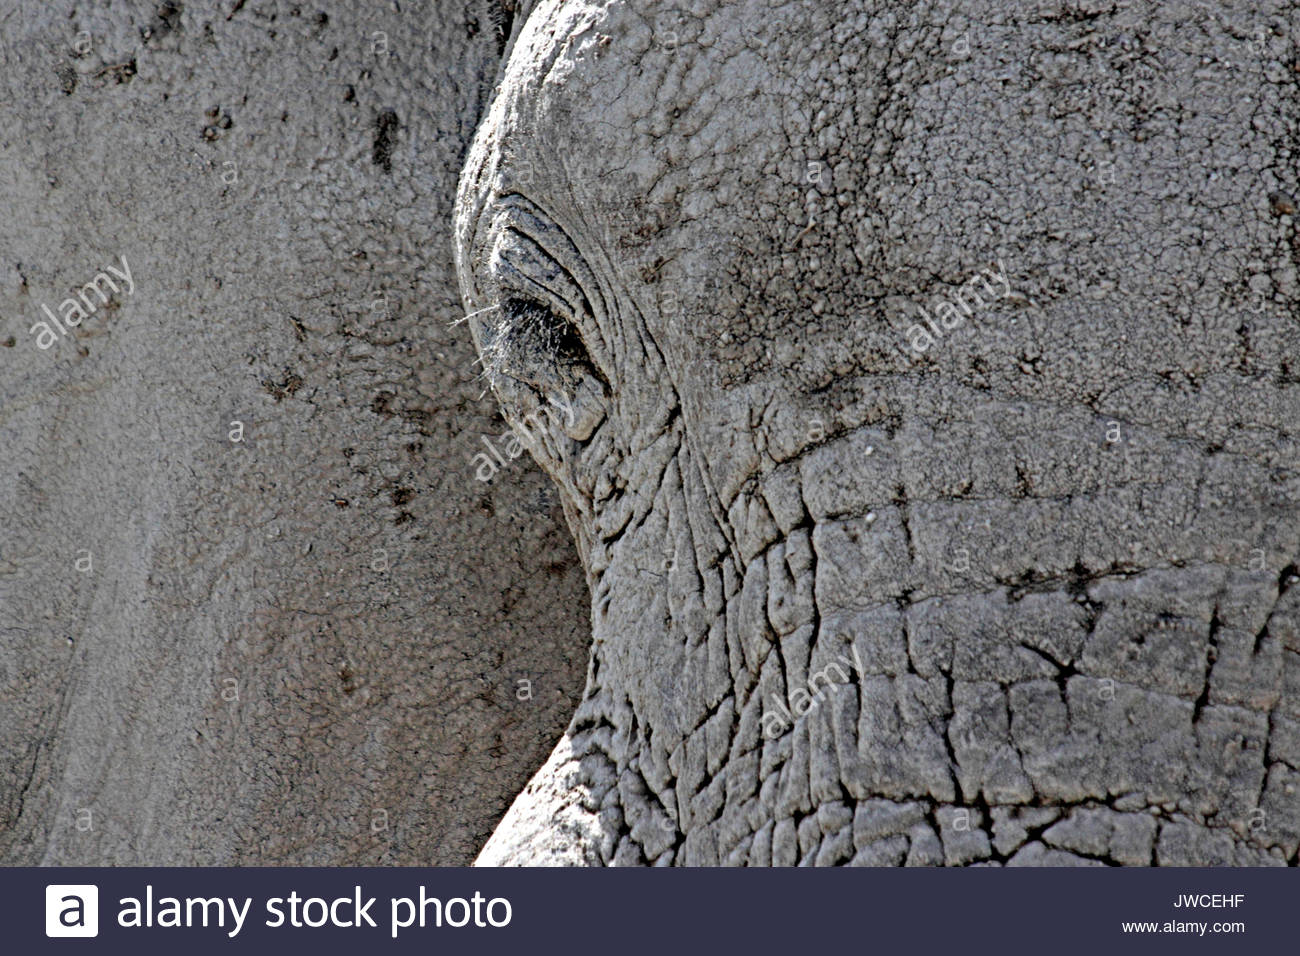 A mud covered African elephant. - Stock Image